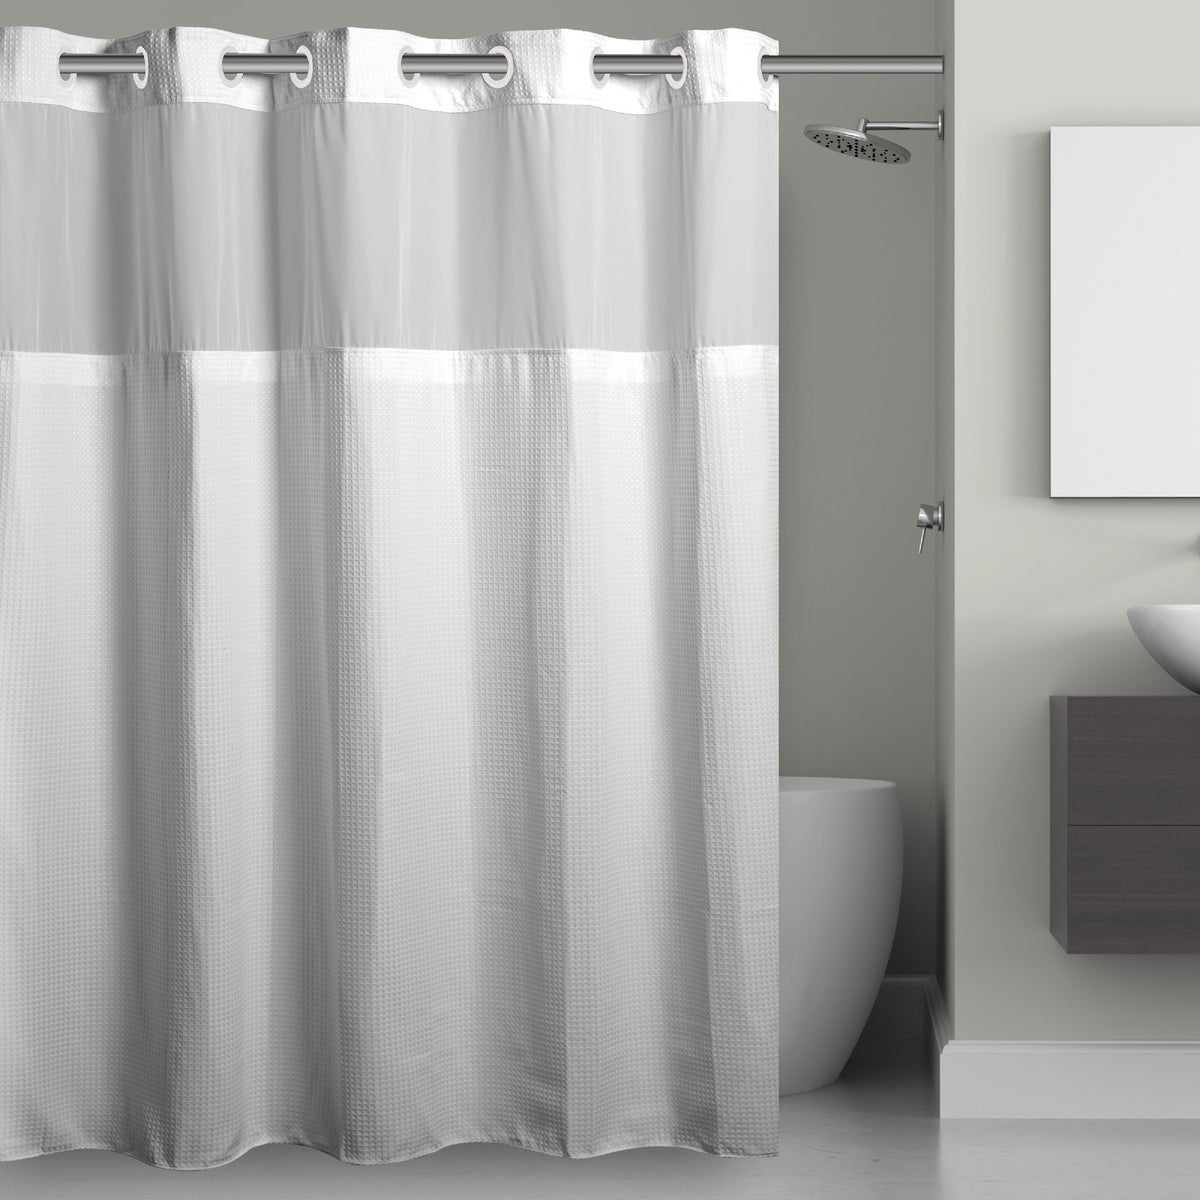 HOOKLESS SHOWER CURTAIN - RBH40MY843 by Swing A Way Mfg Co